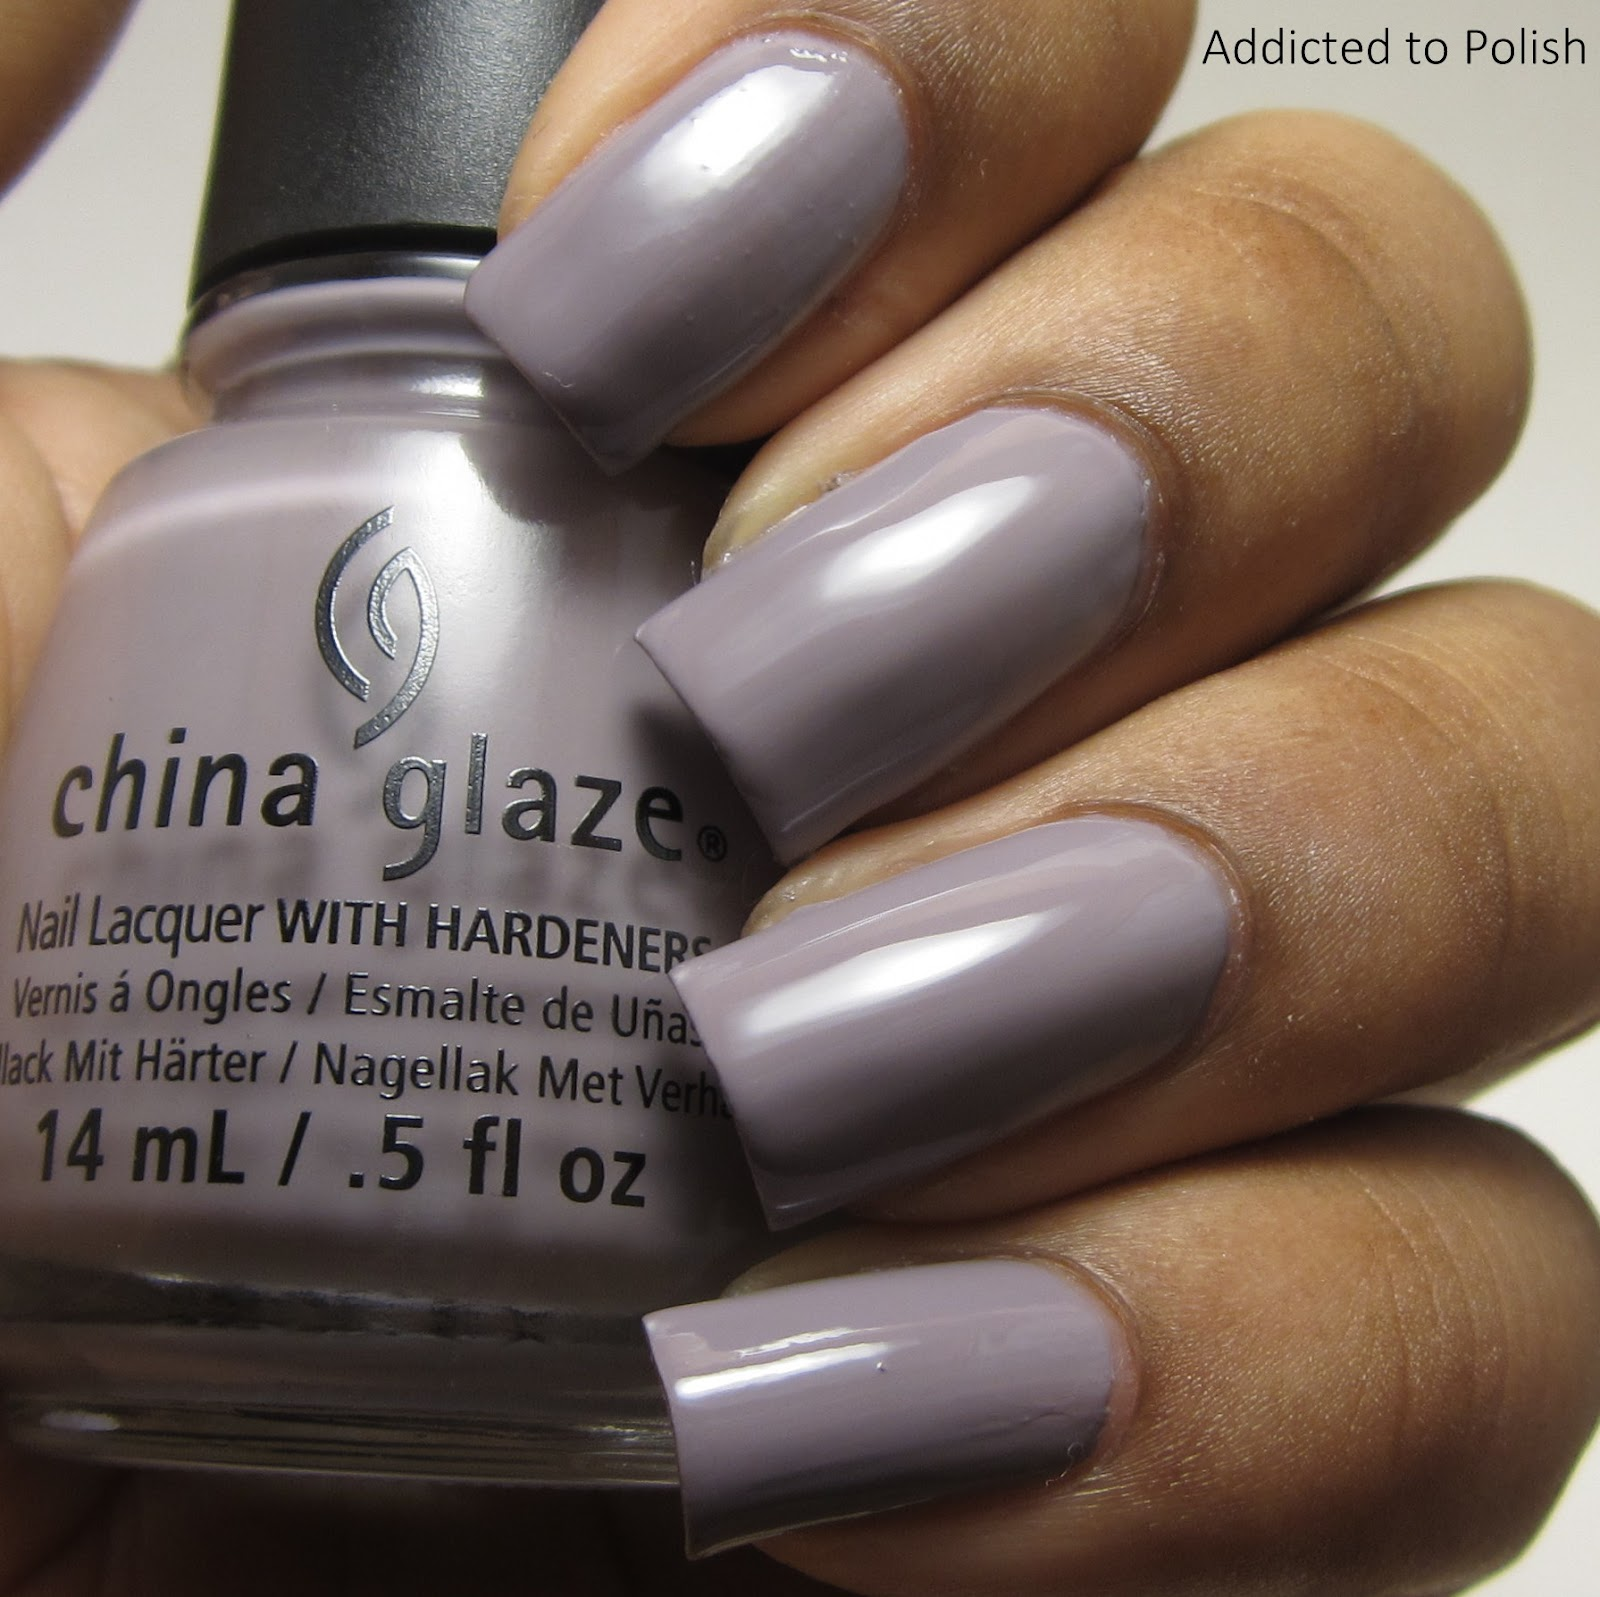 china-glaze-release-the-giver